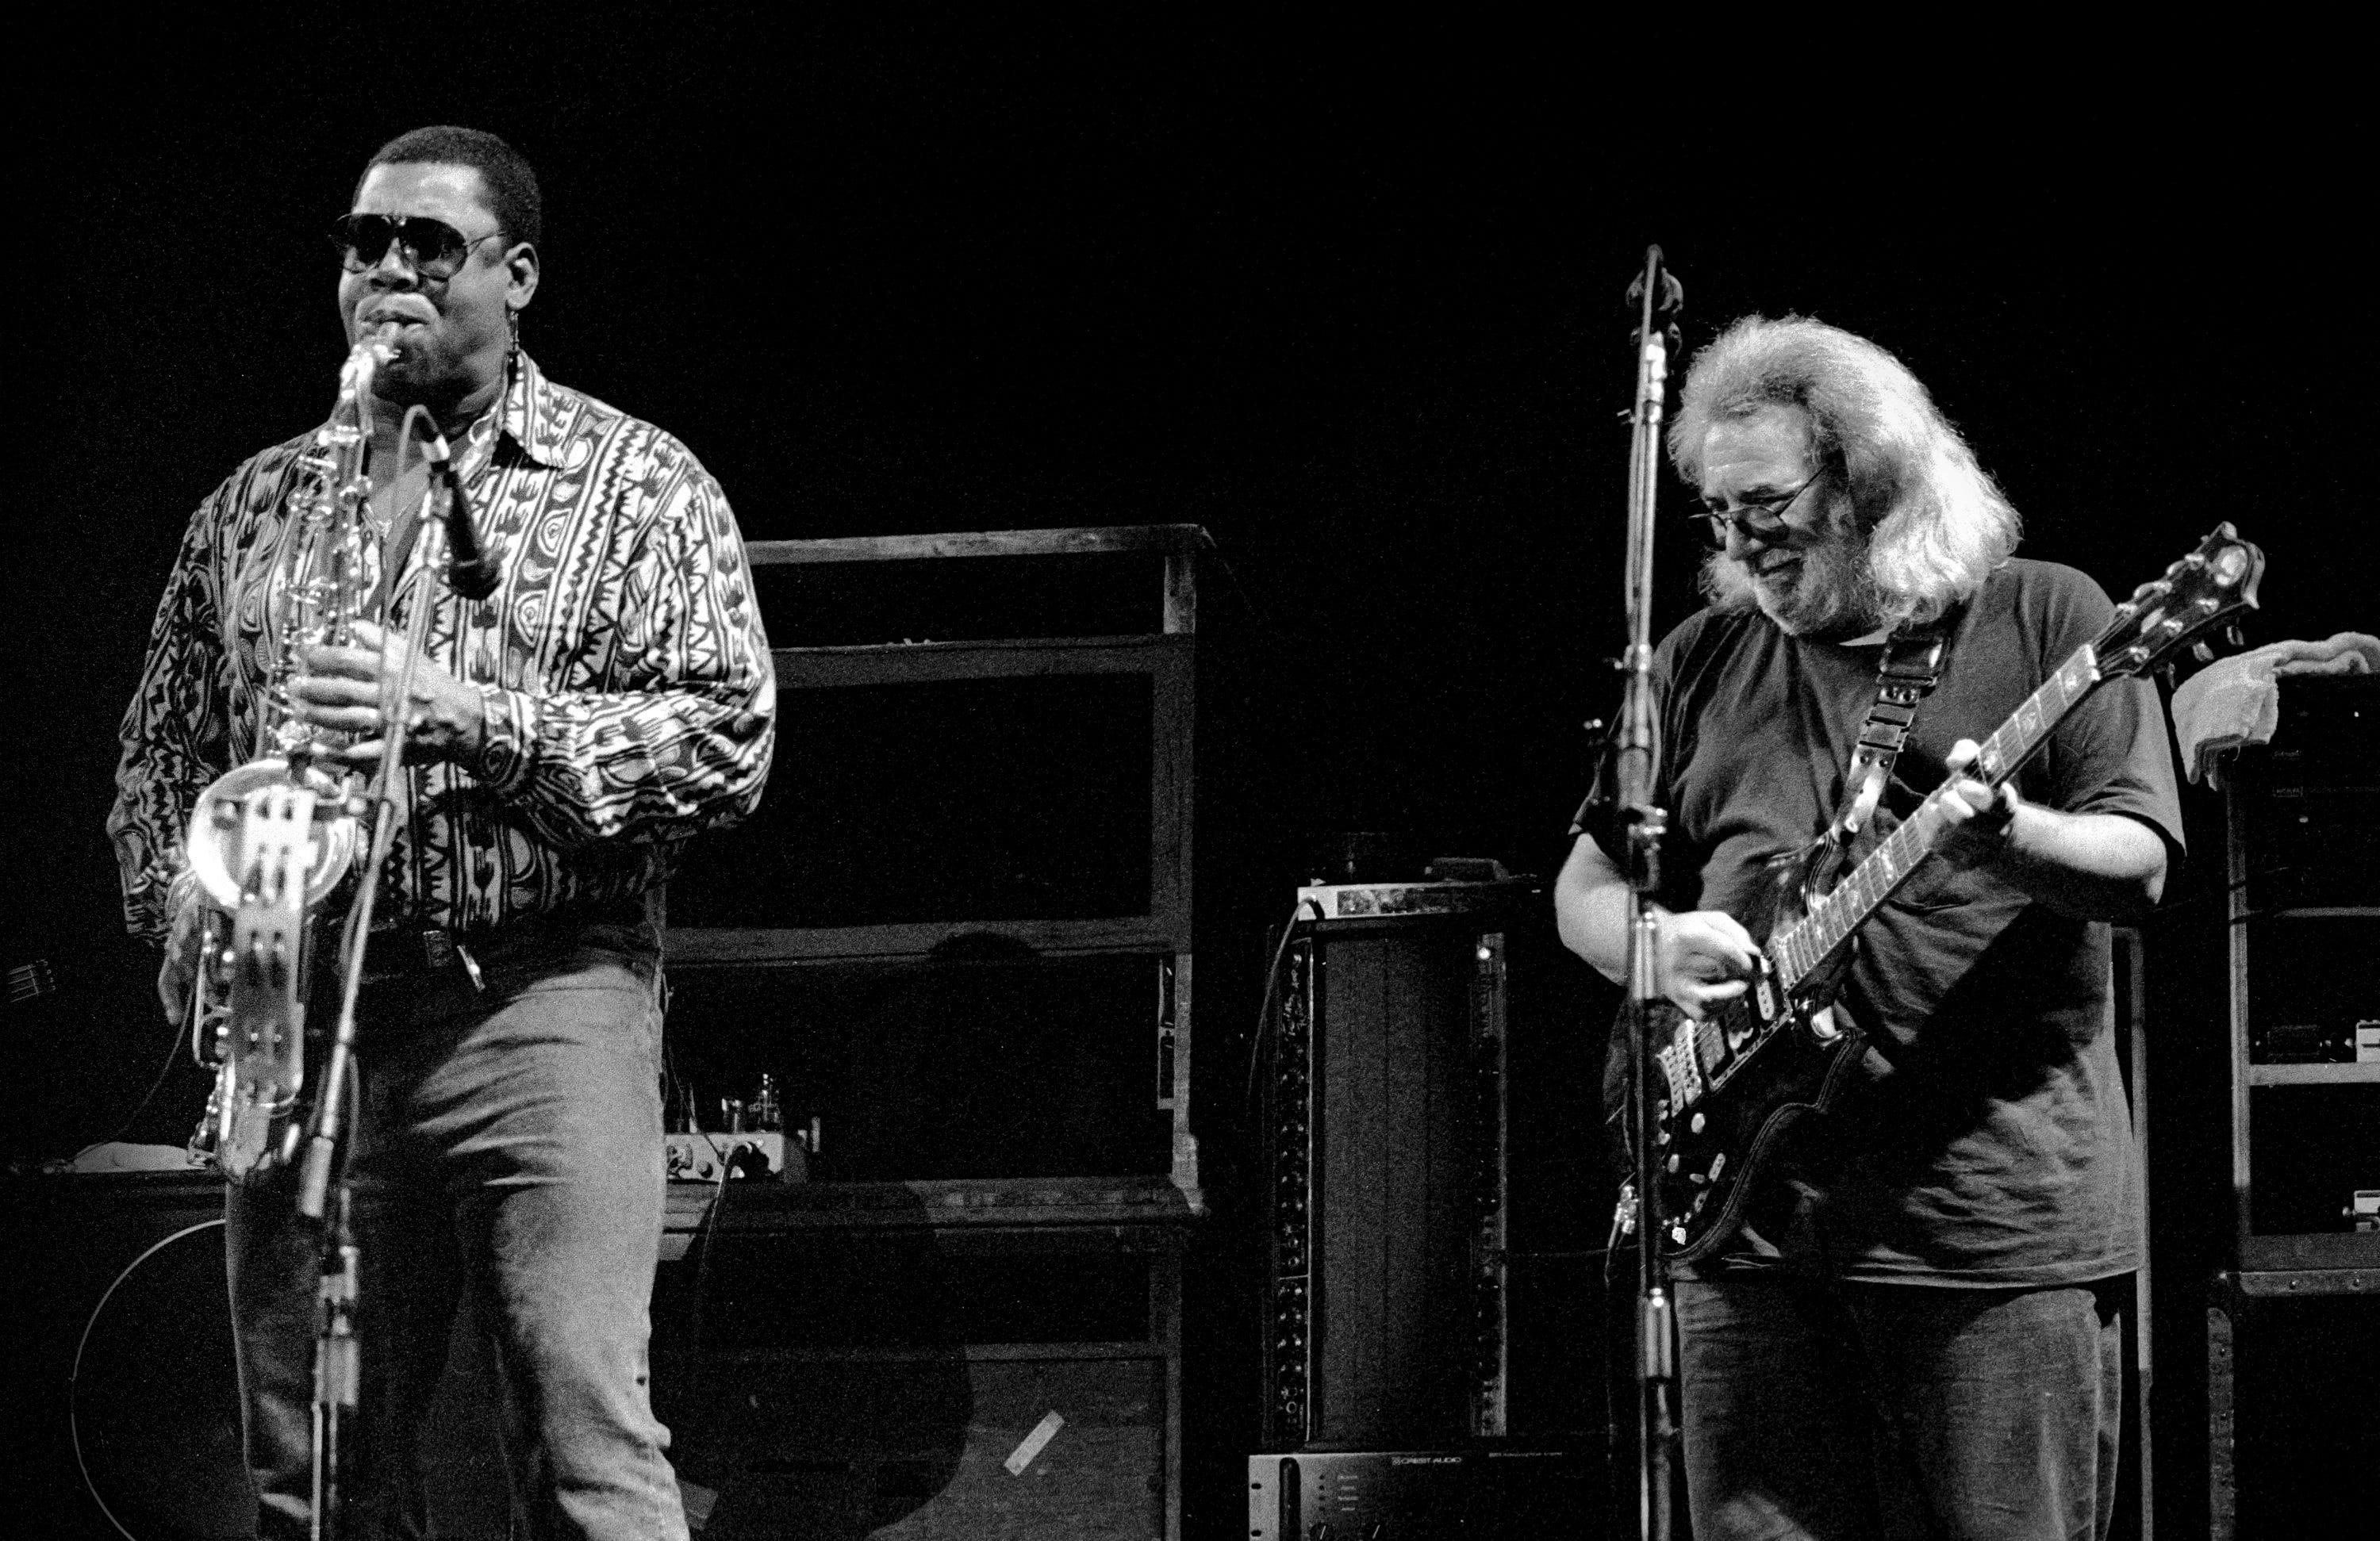 Jerry Garcia Band, Clarence Clemons join forces on new live album: details